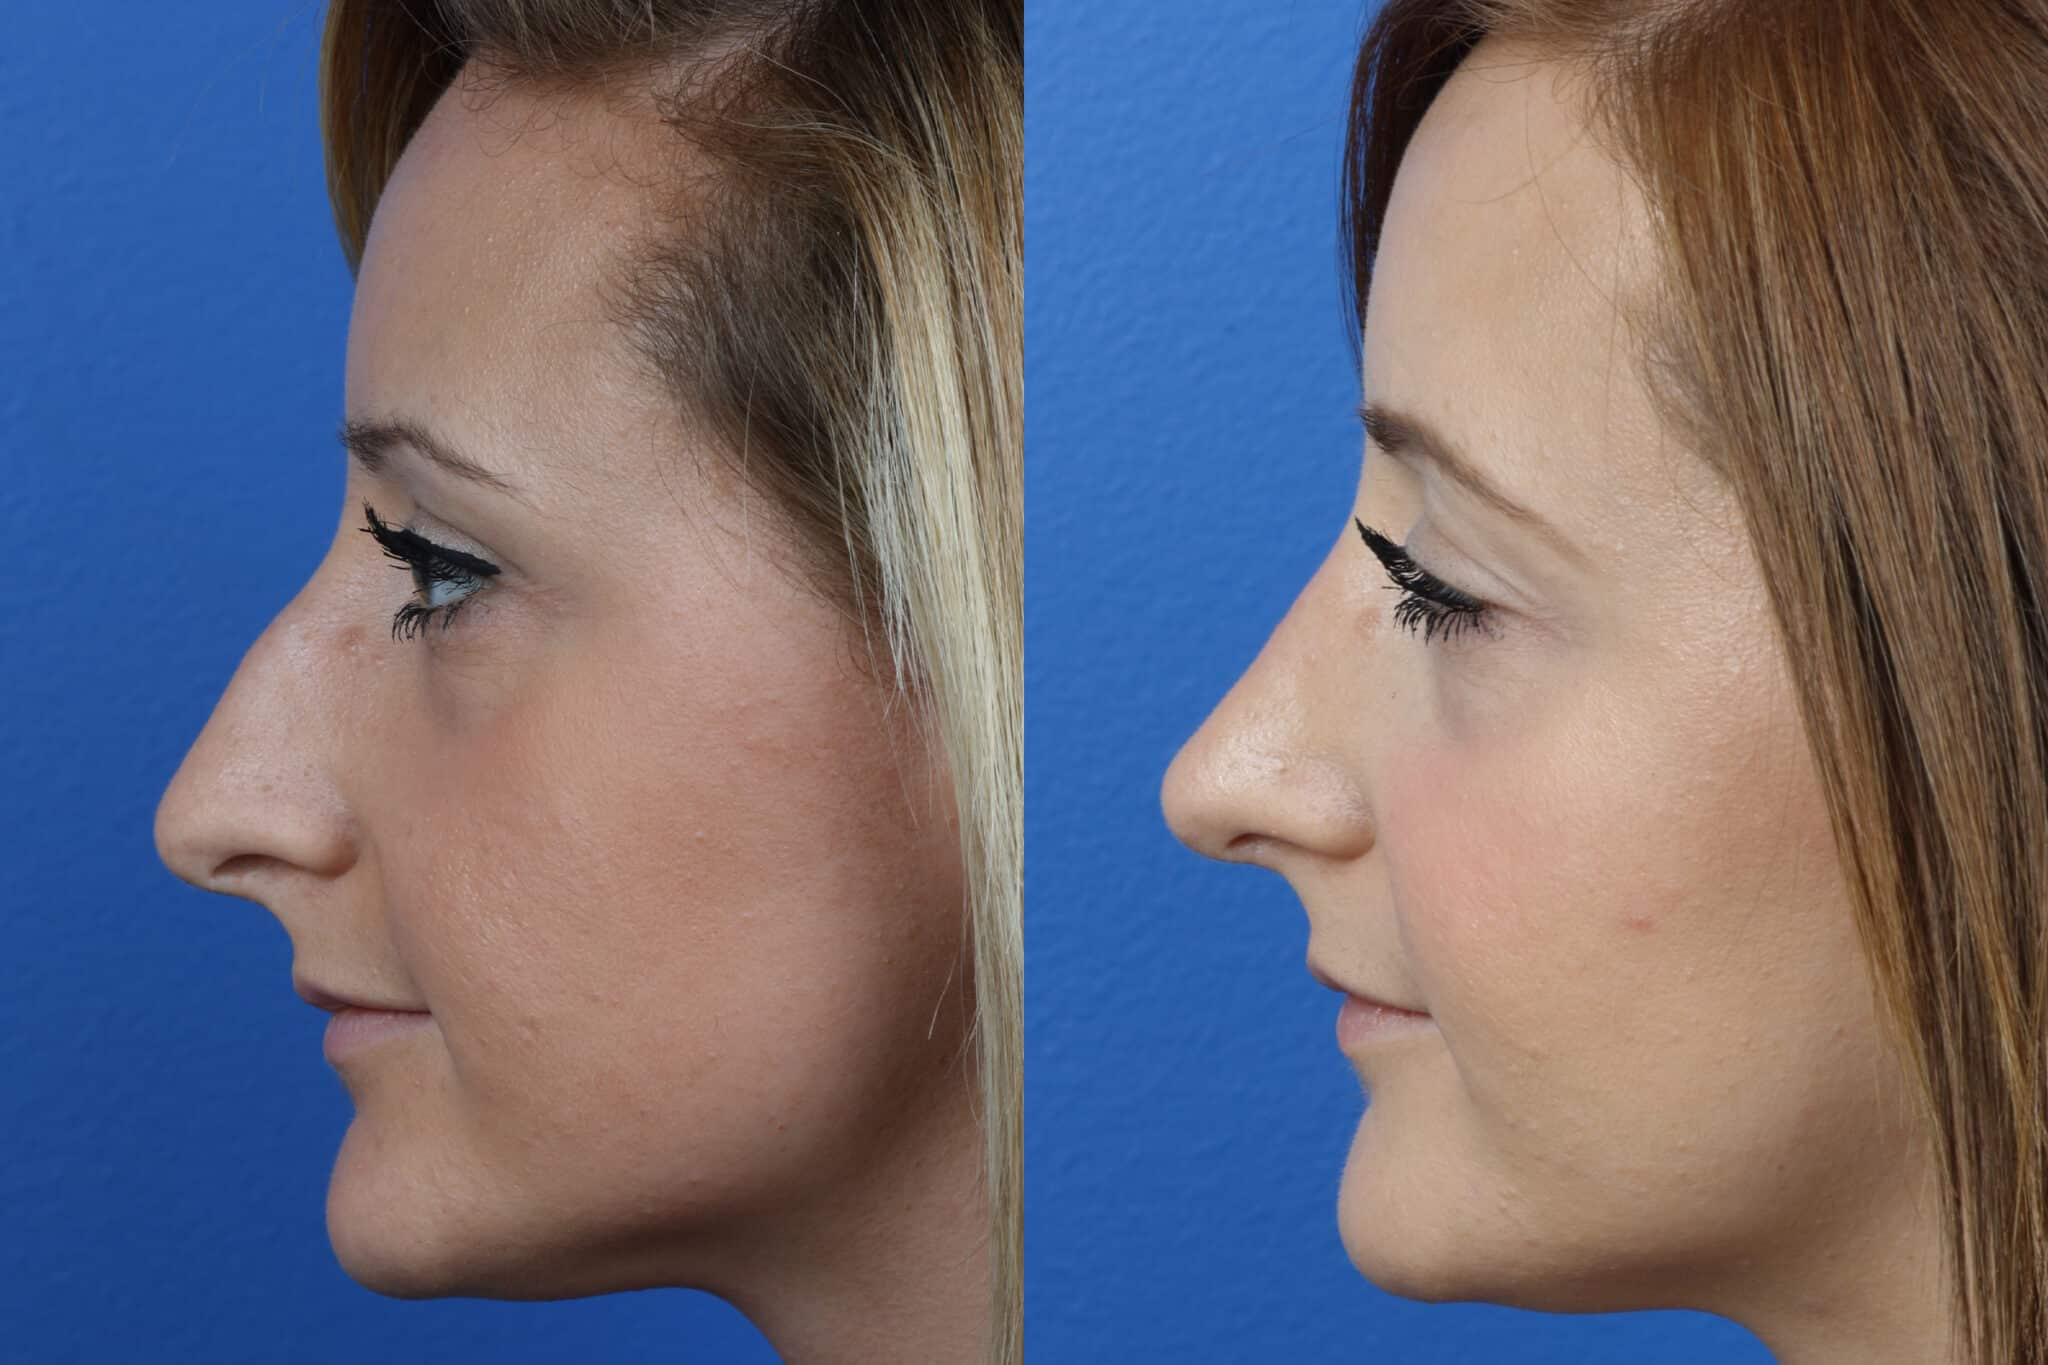 Rhinoplasty to Correct Dorsal Bump by Dr. Miller